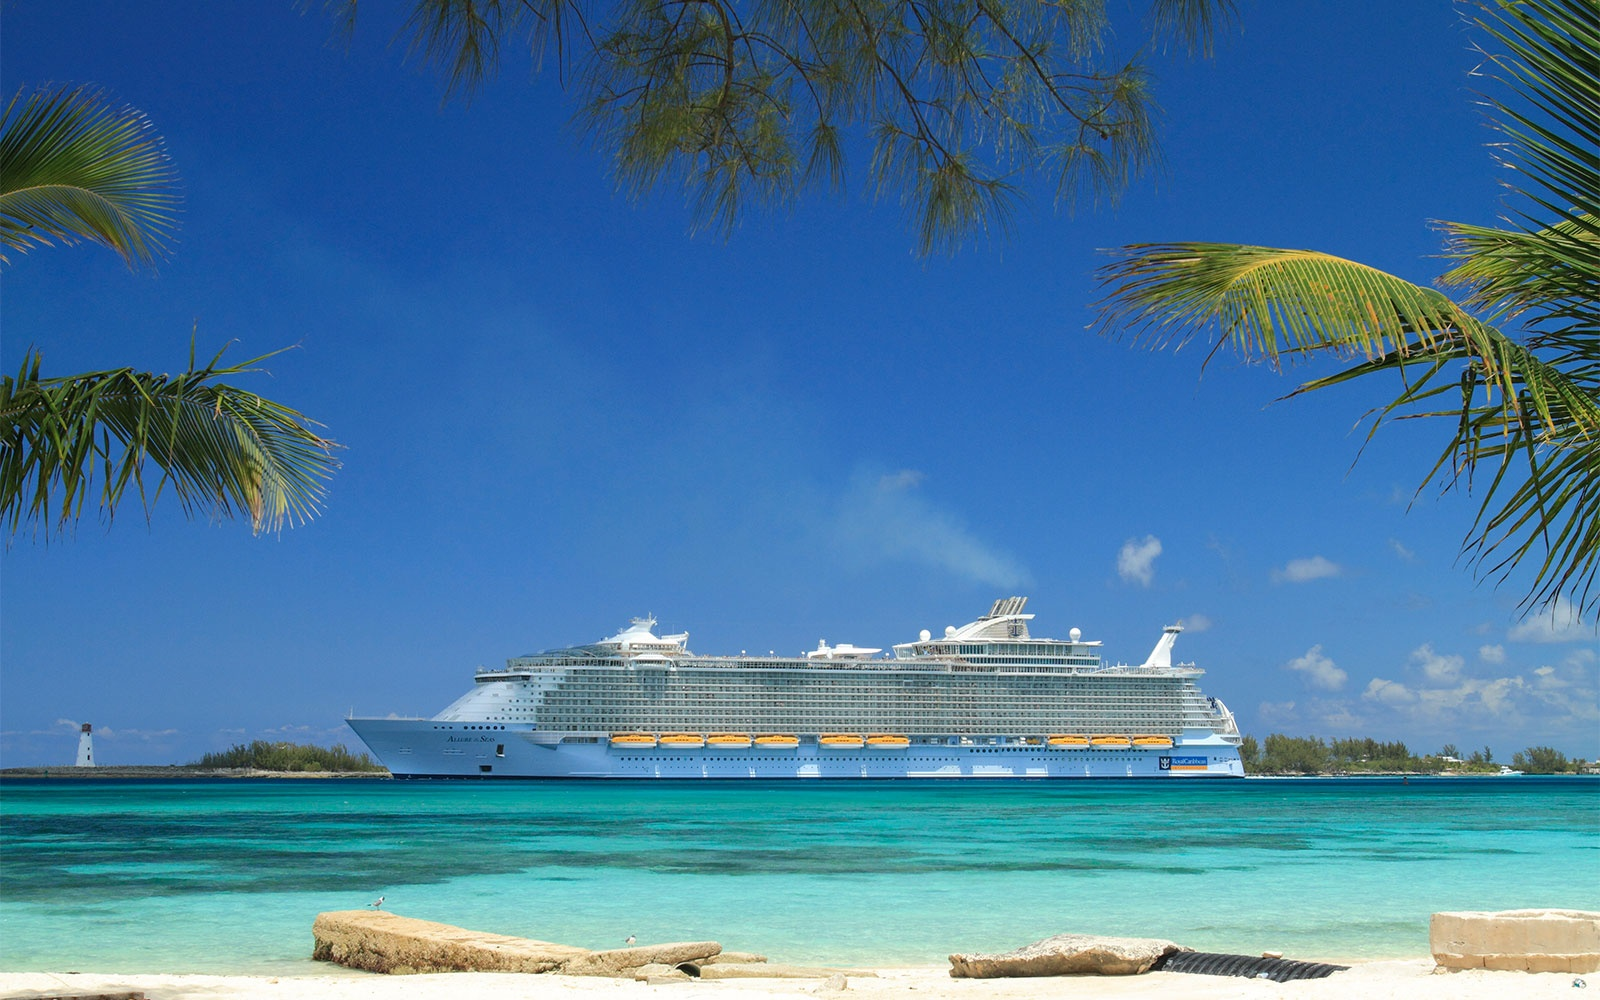 No. 5 Mega-Ship Ocean Cruise Line: Royal Caribbean International